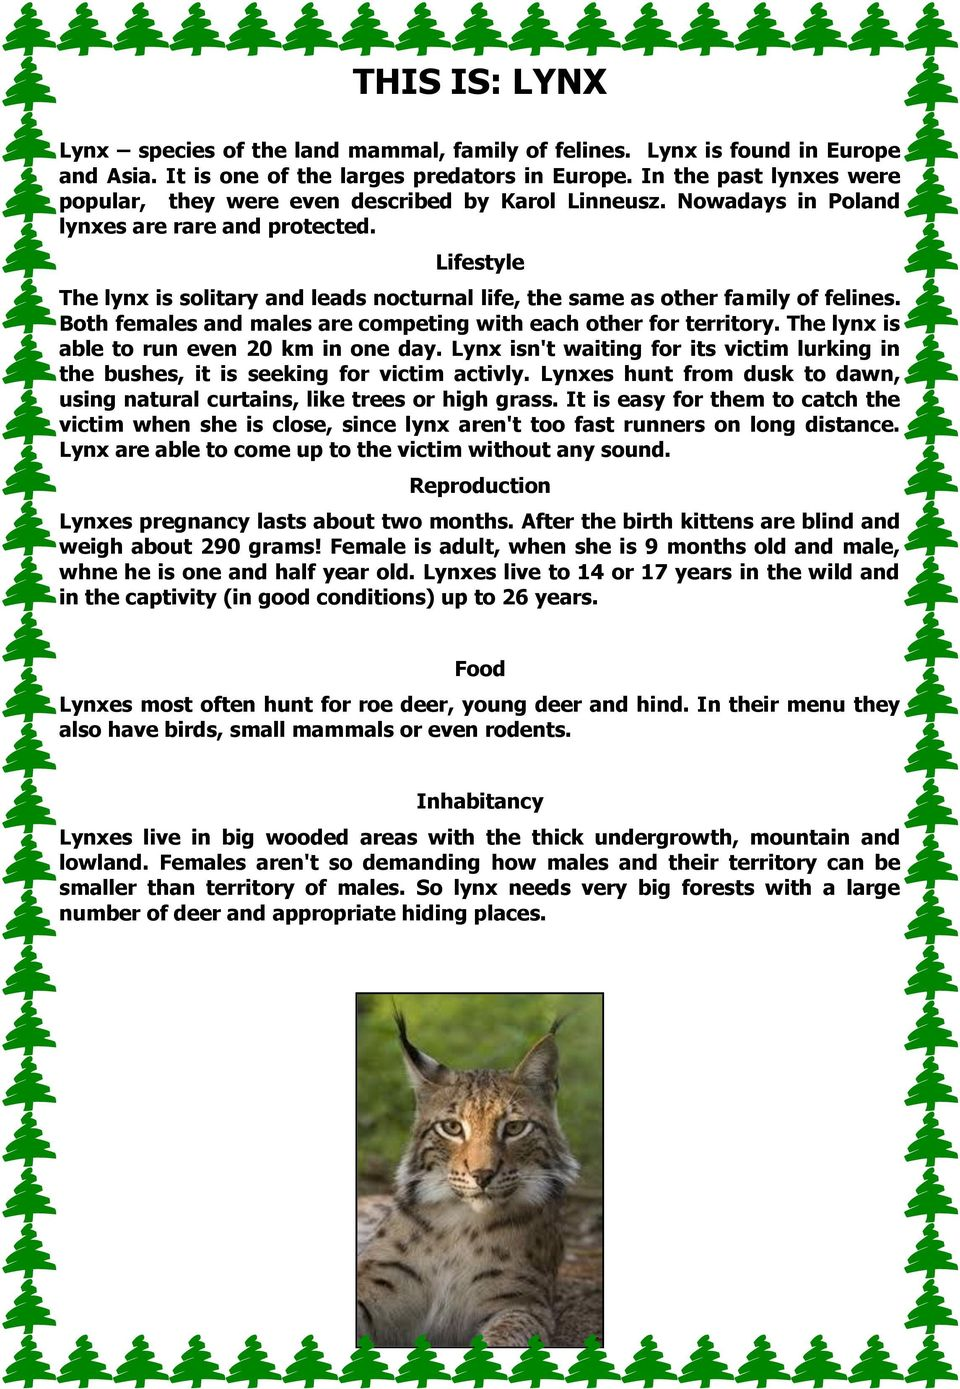 Lifestyle The lynx is solitary and leads nocturnal life, the same as other family of felines. Both females and males are competing with each other for territory.